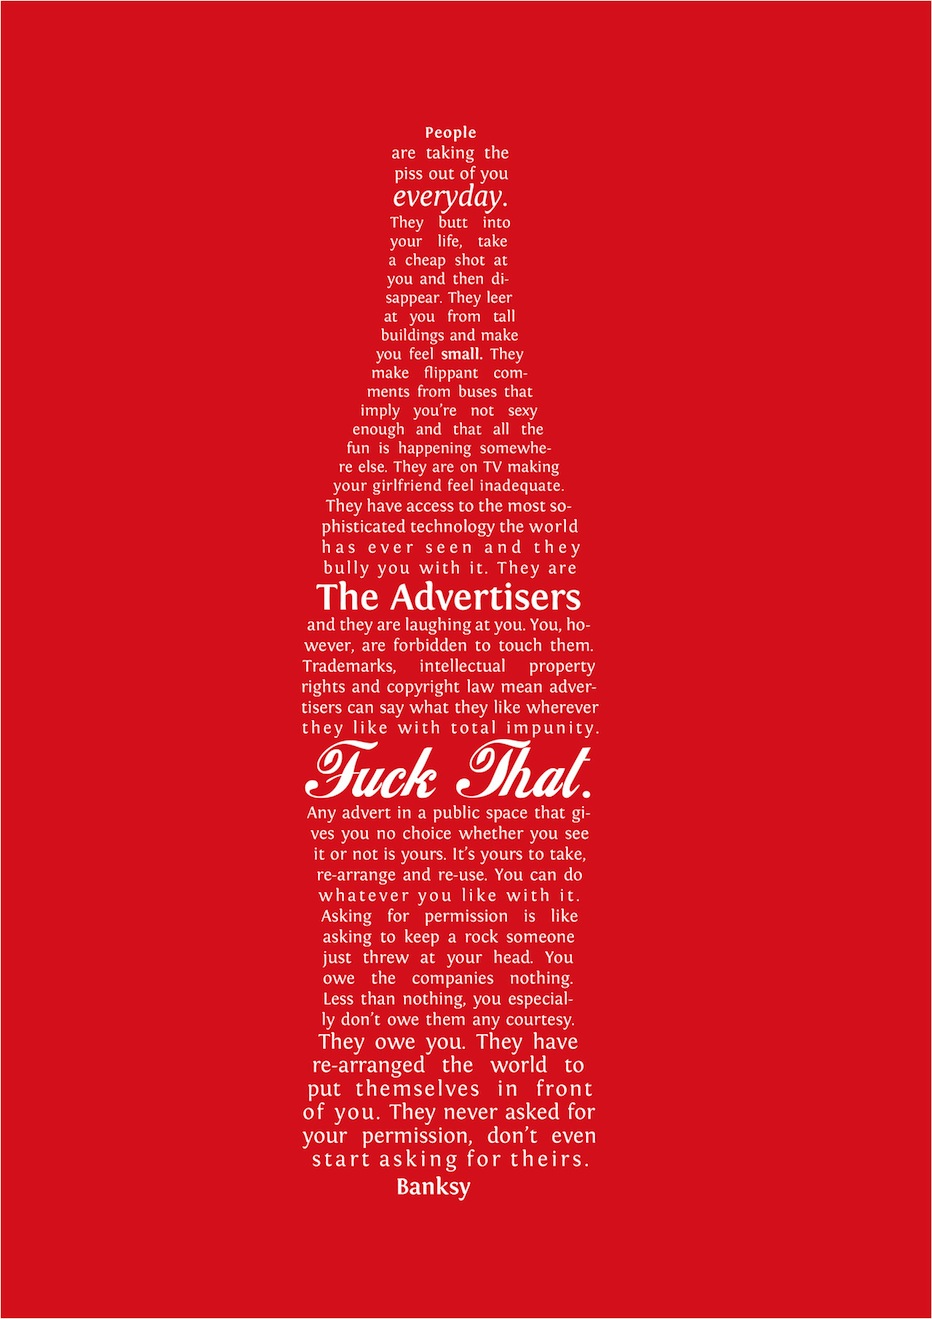 Typographic anti ad forms banksy s quote into the shape of a